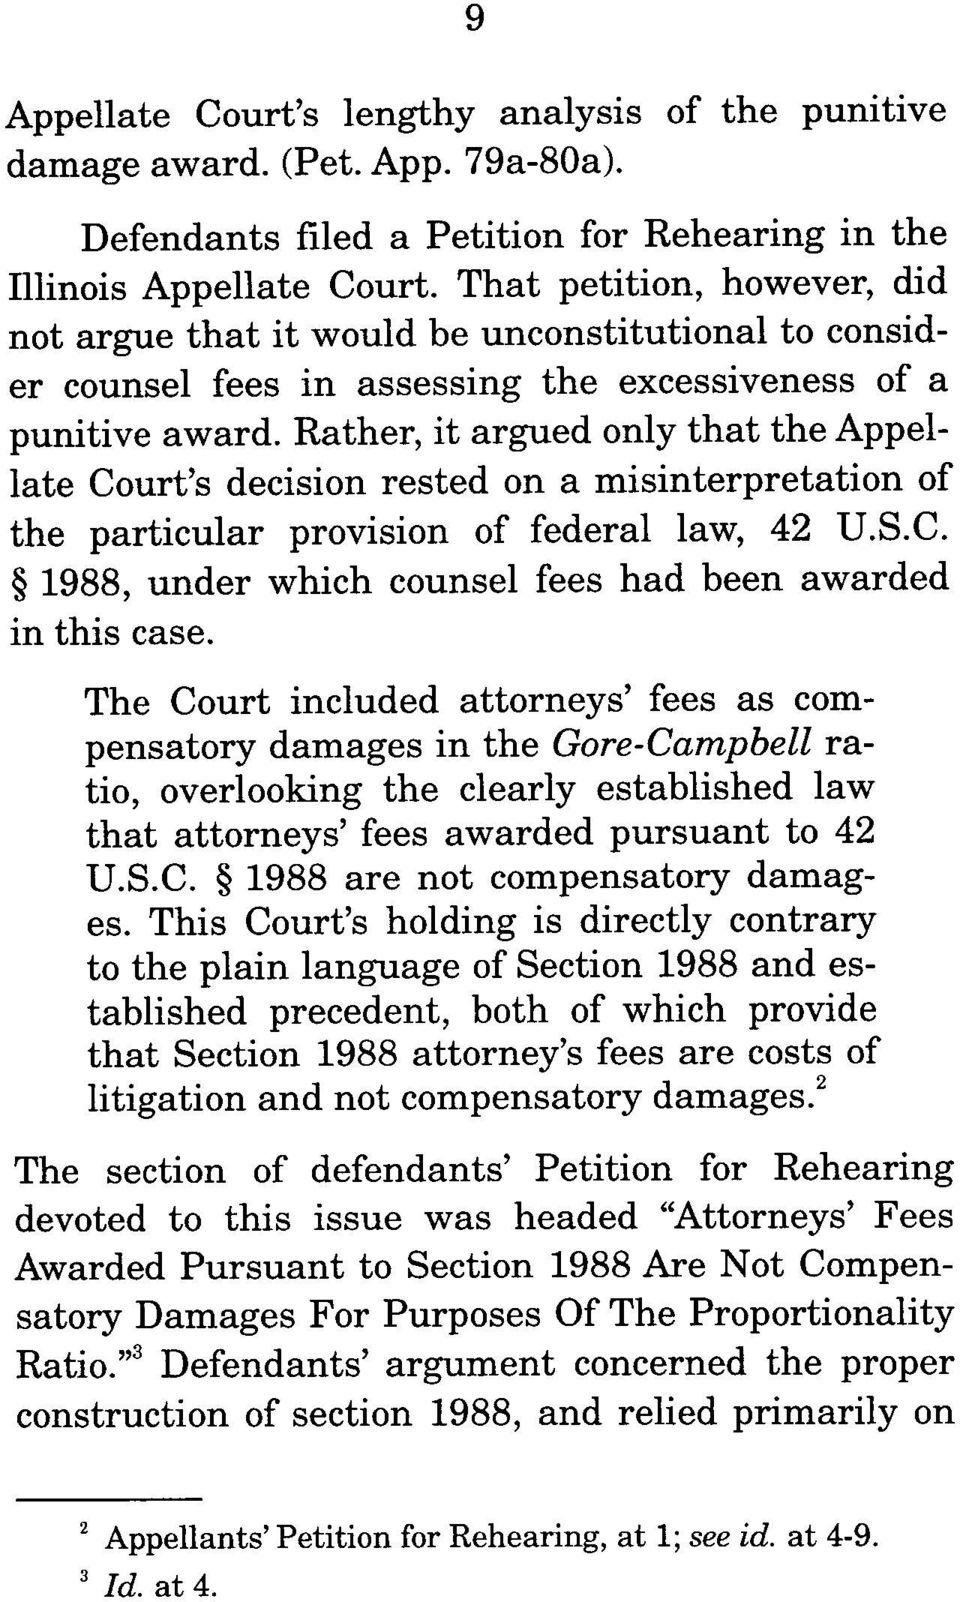 Rather, it argued only that the Appellate Court s decision rested on a misinterpretation of the particular provision of federal law, 42 U.S.C. 1988, under which counsel fees had been awarded in this case.